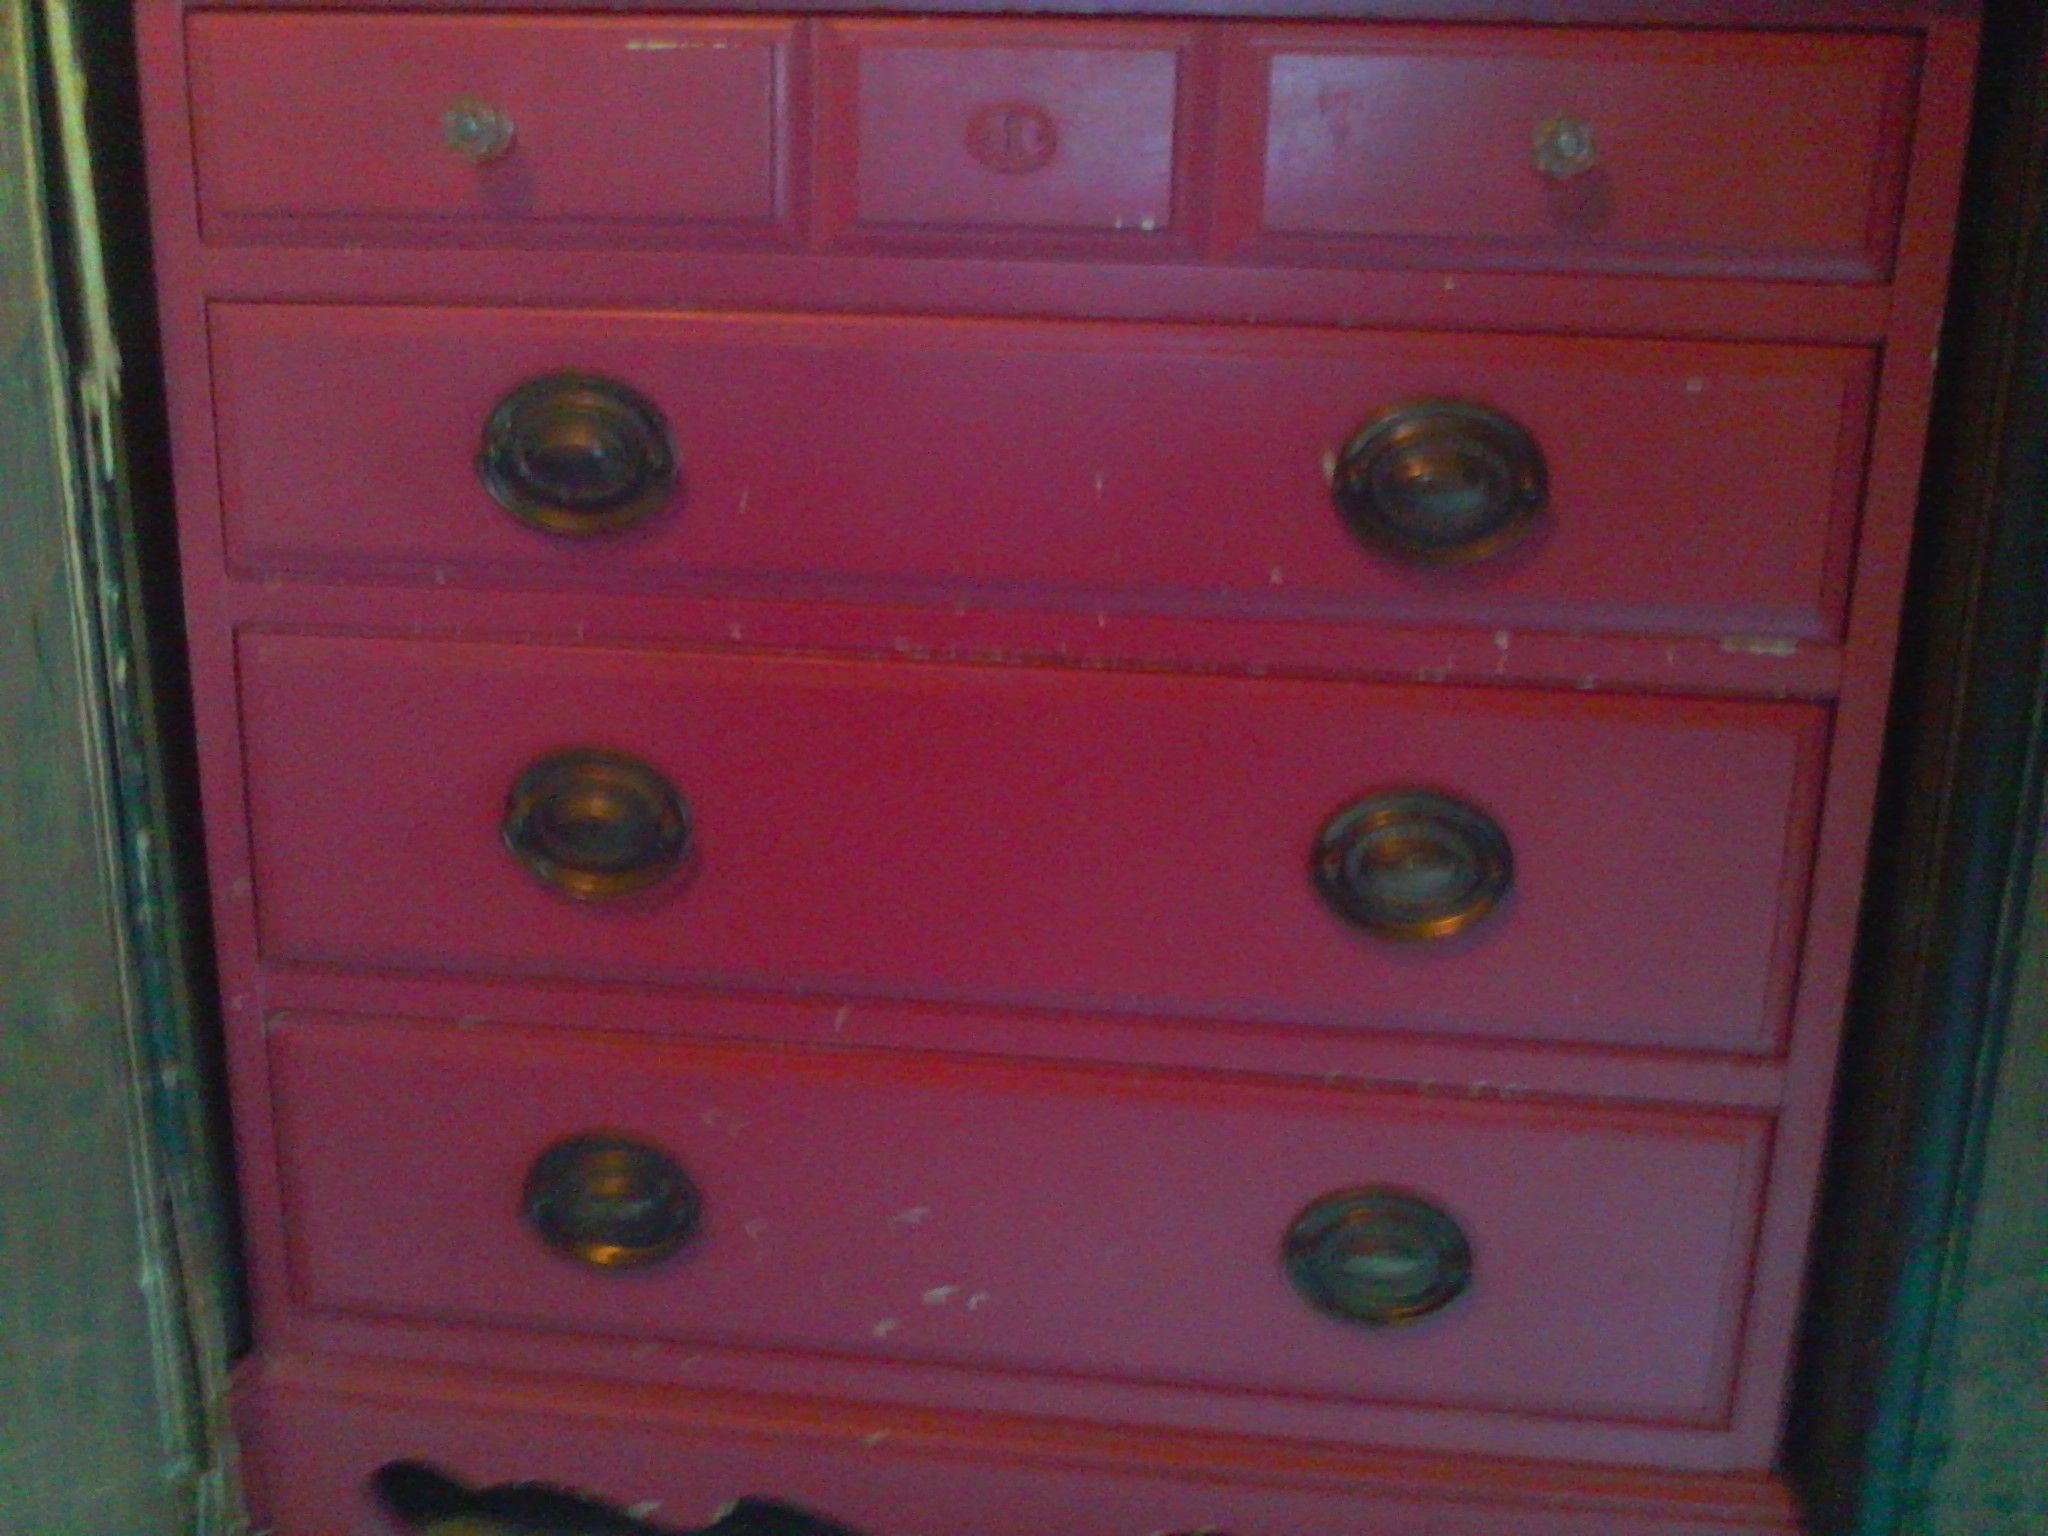 girls pink 4 drawer dresser,vintage in unemployed's Garage Sale in New carlisle , IN for $20.00. Cash & carry,  no shipping